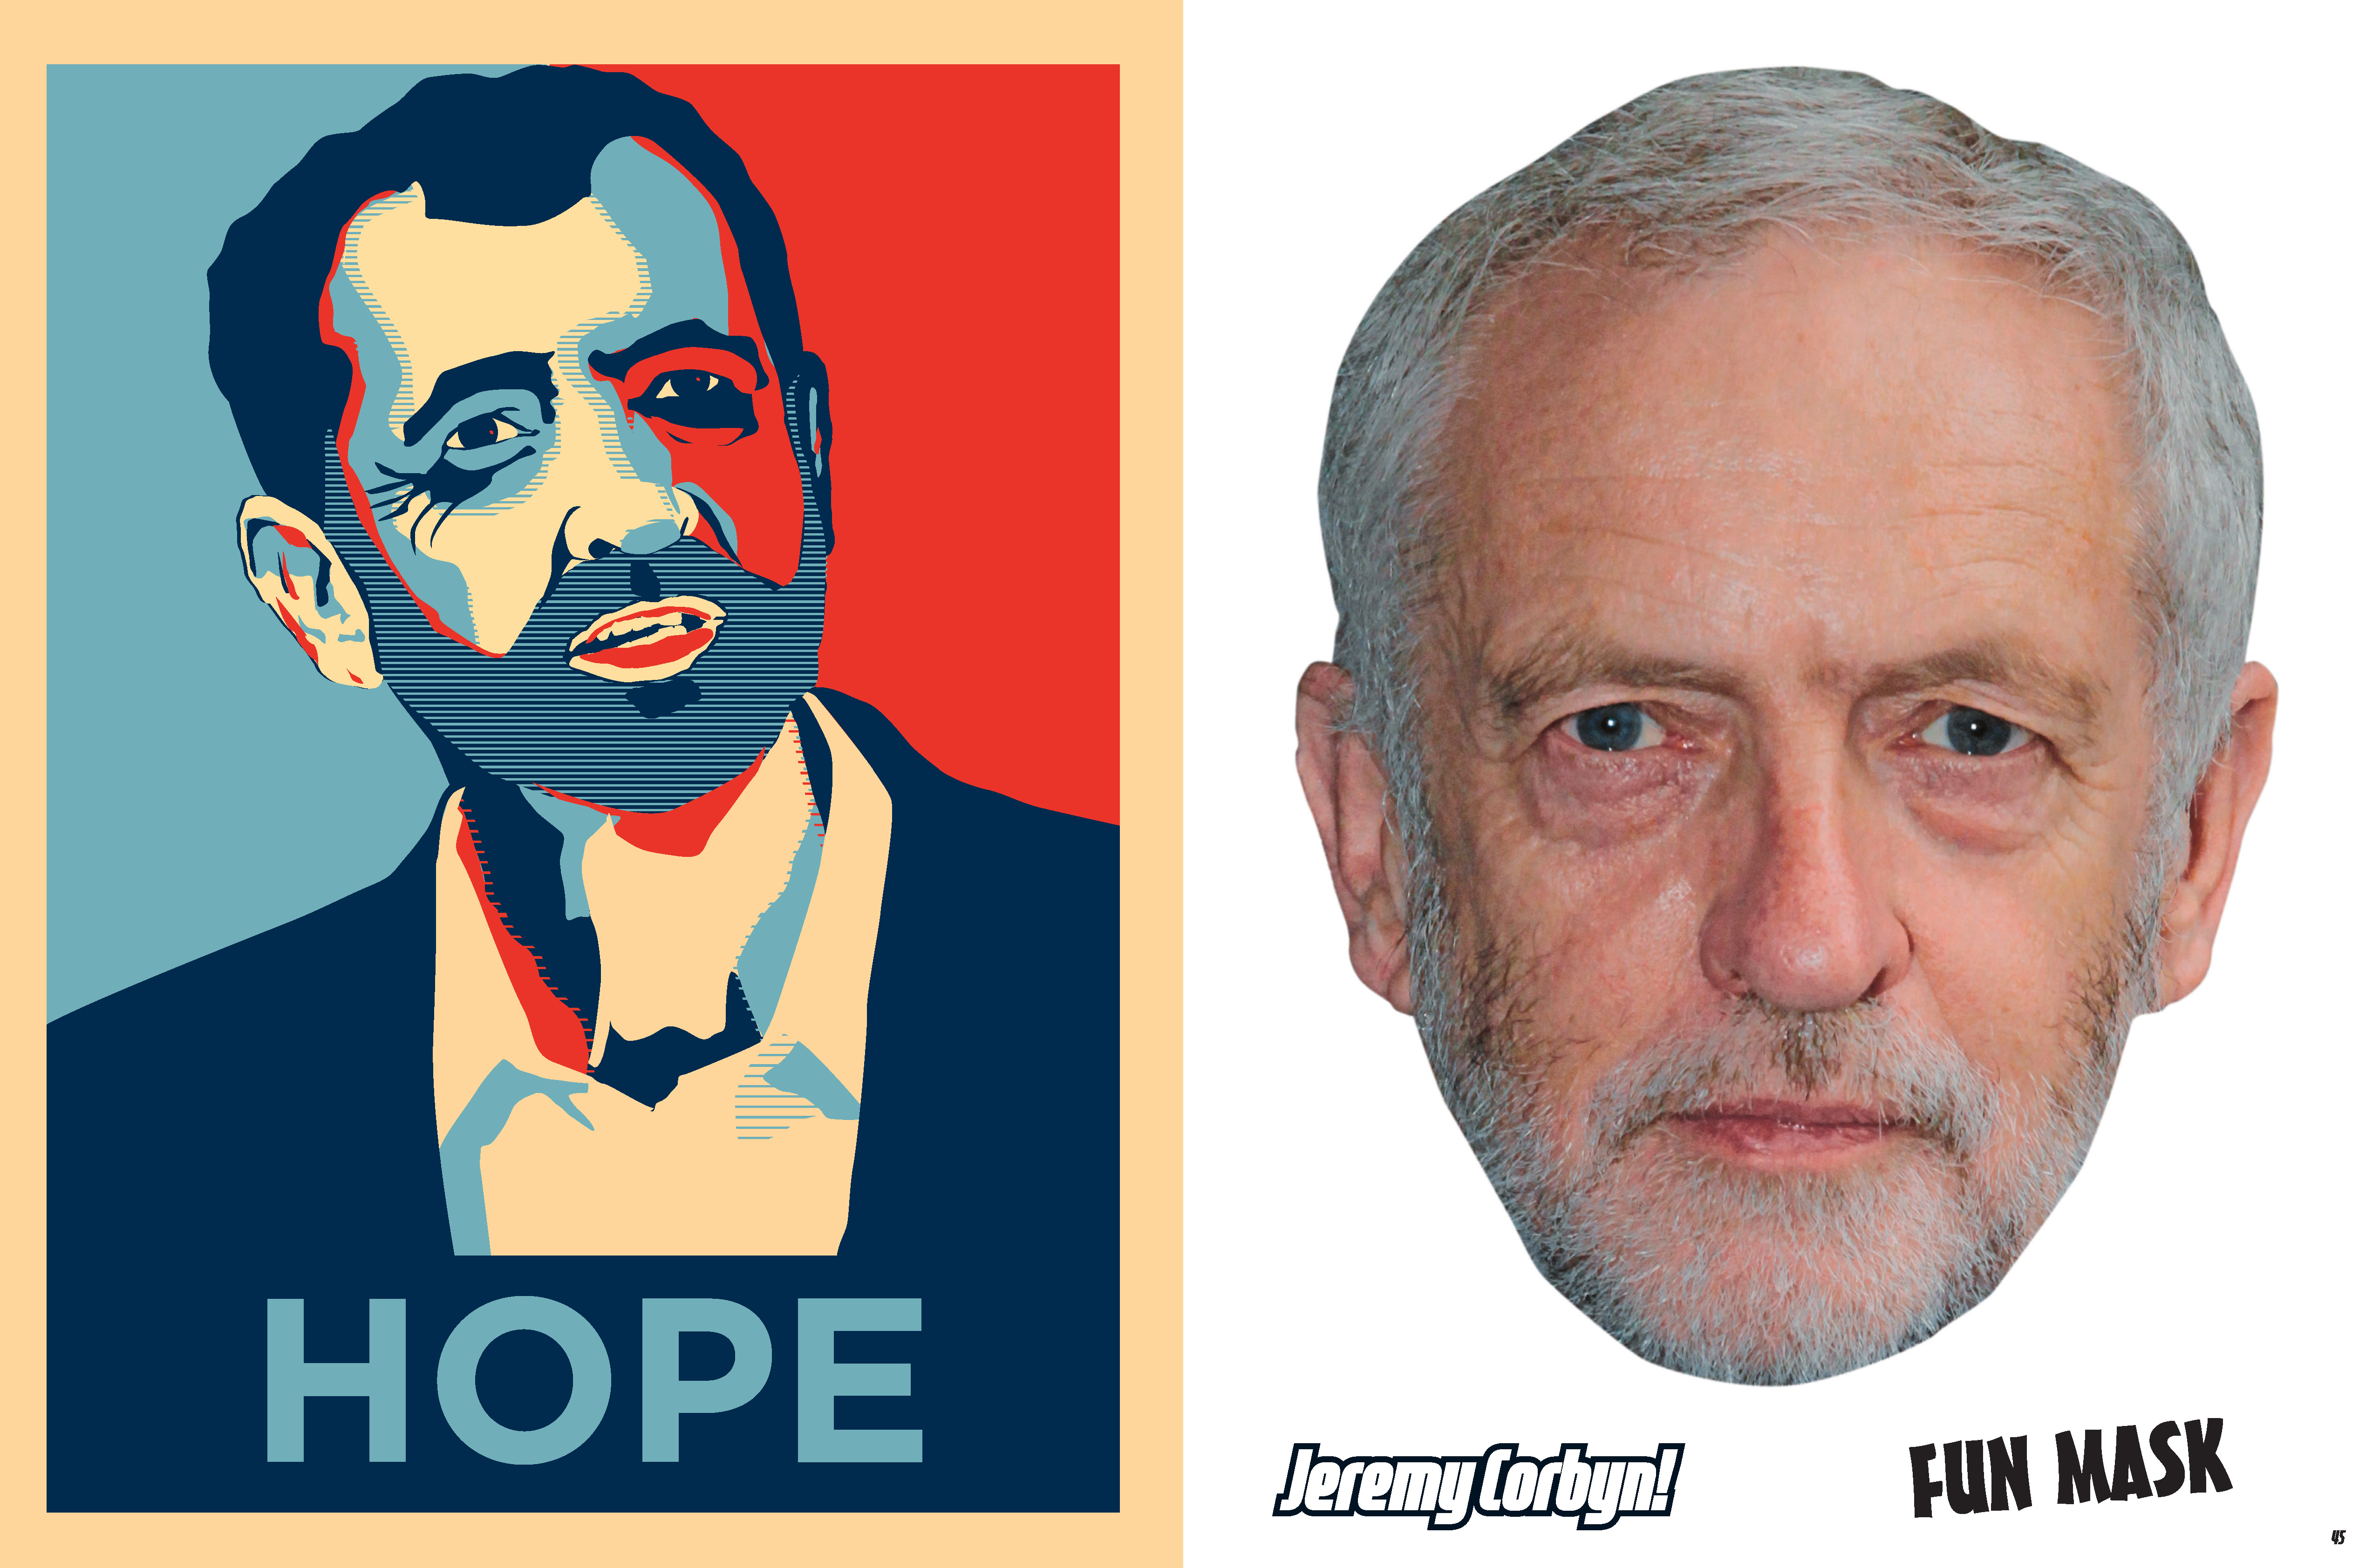 Jeremy Corbyn in the style of Barack Obama's Hope picture (Portico)